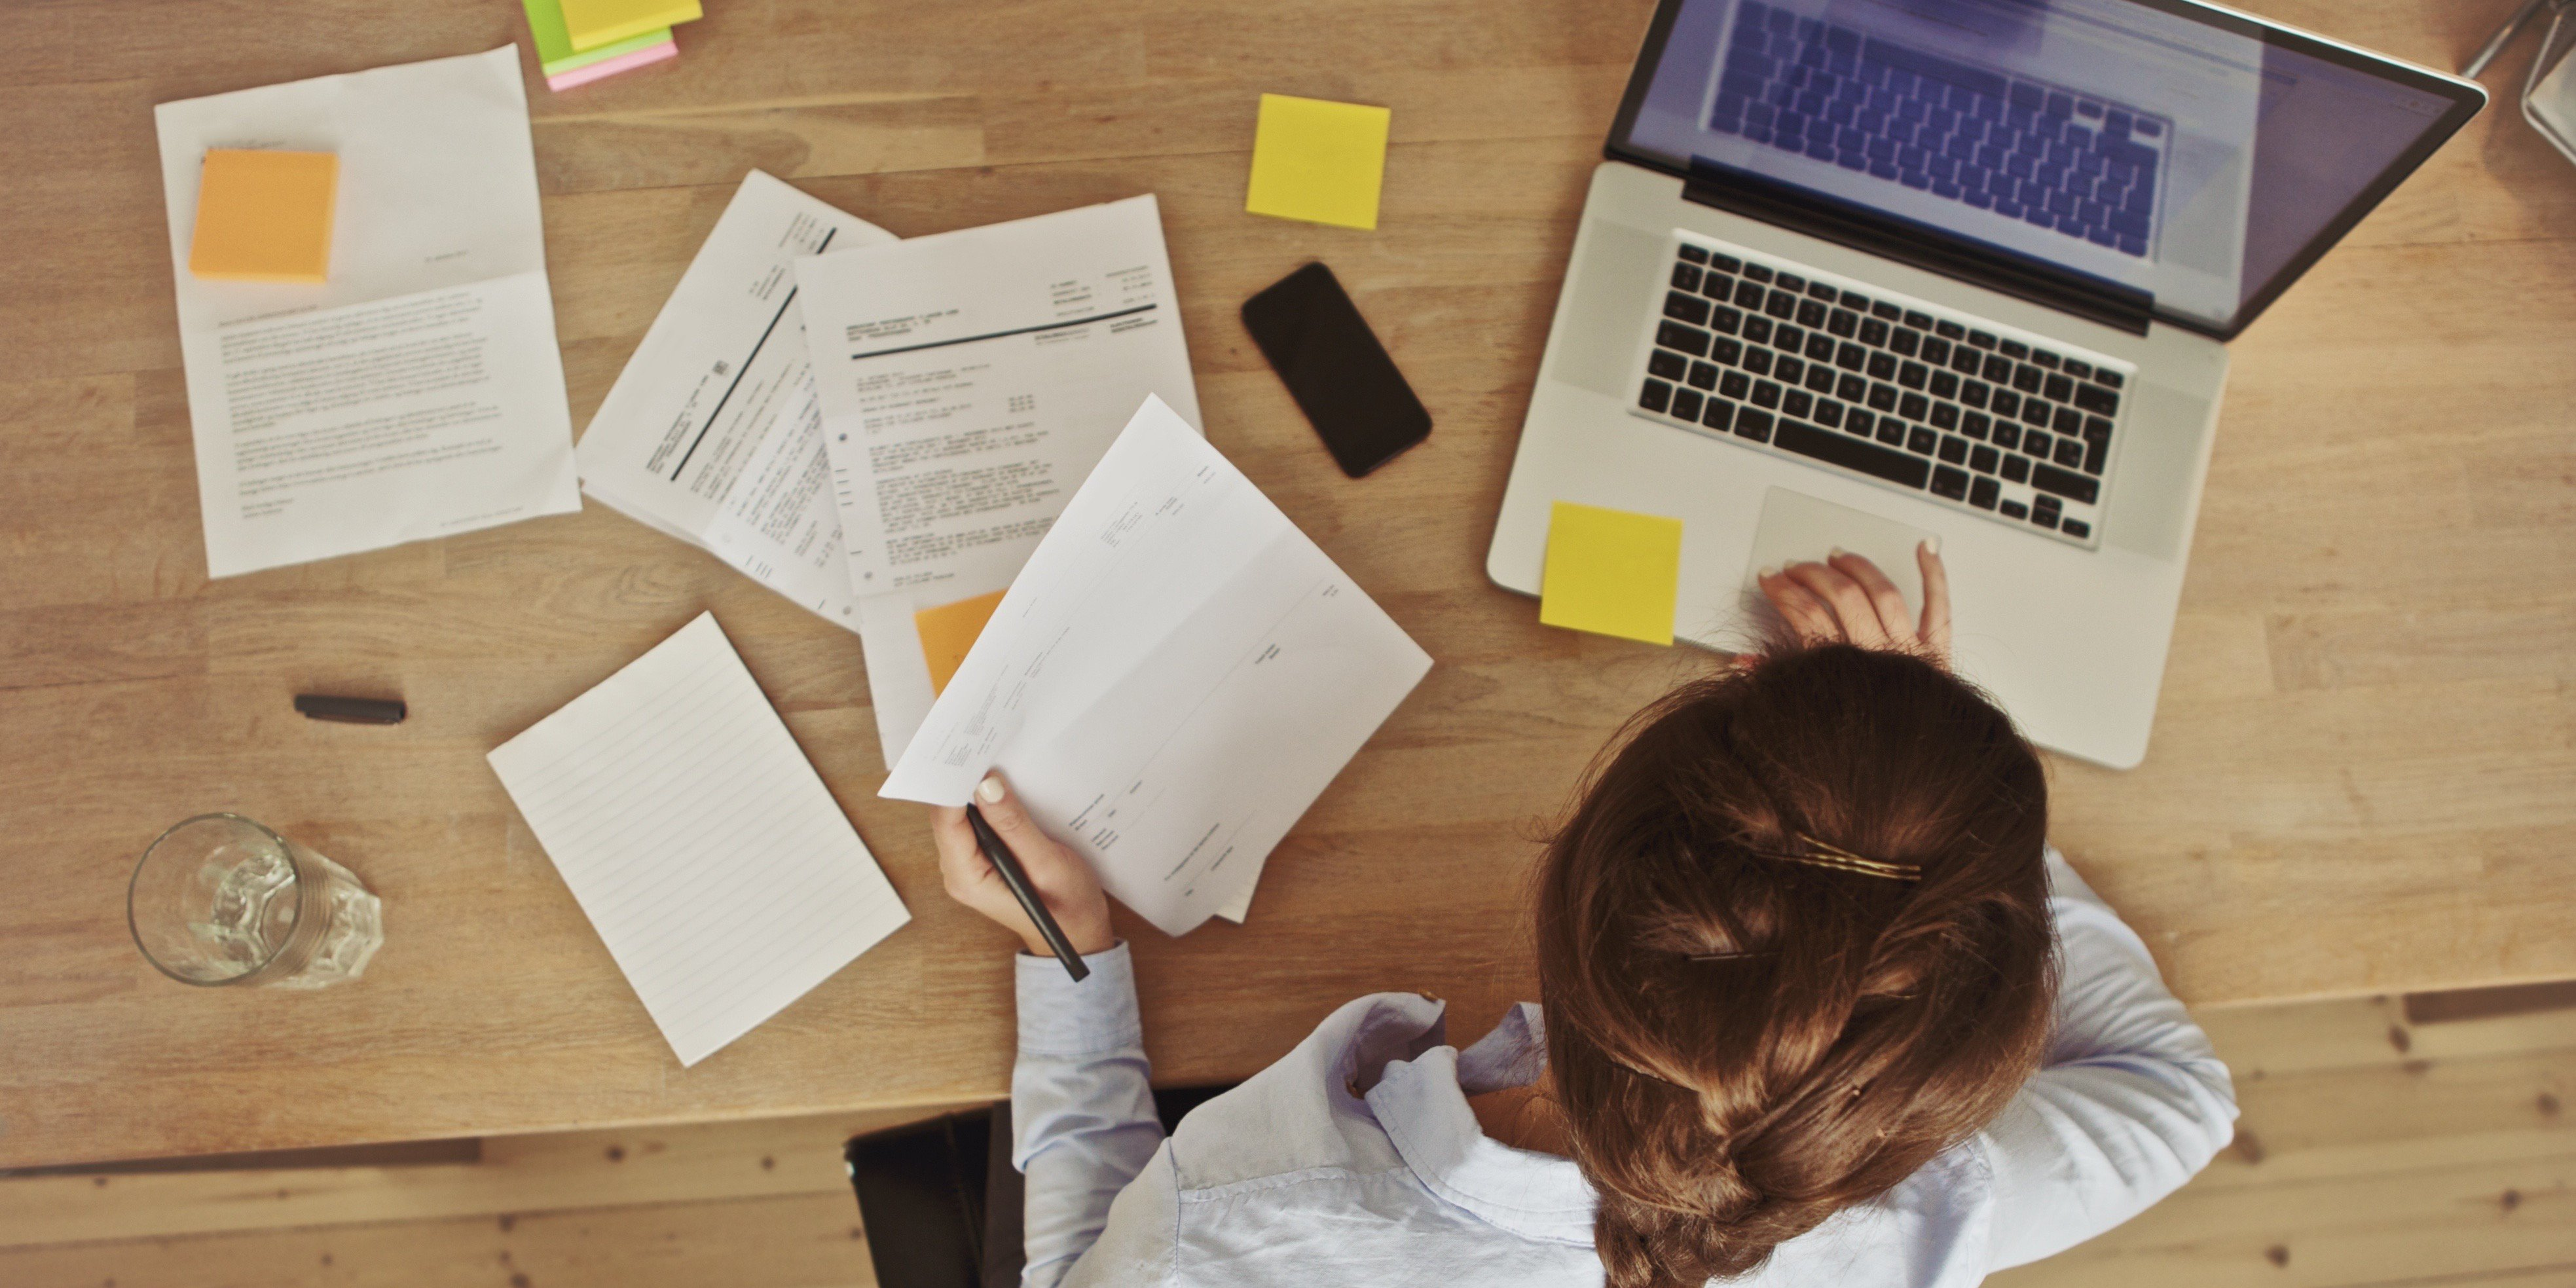 All You Need to Know About Bookkeeping Services - How to Choose a Right One?